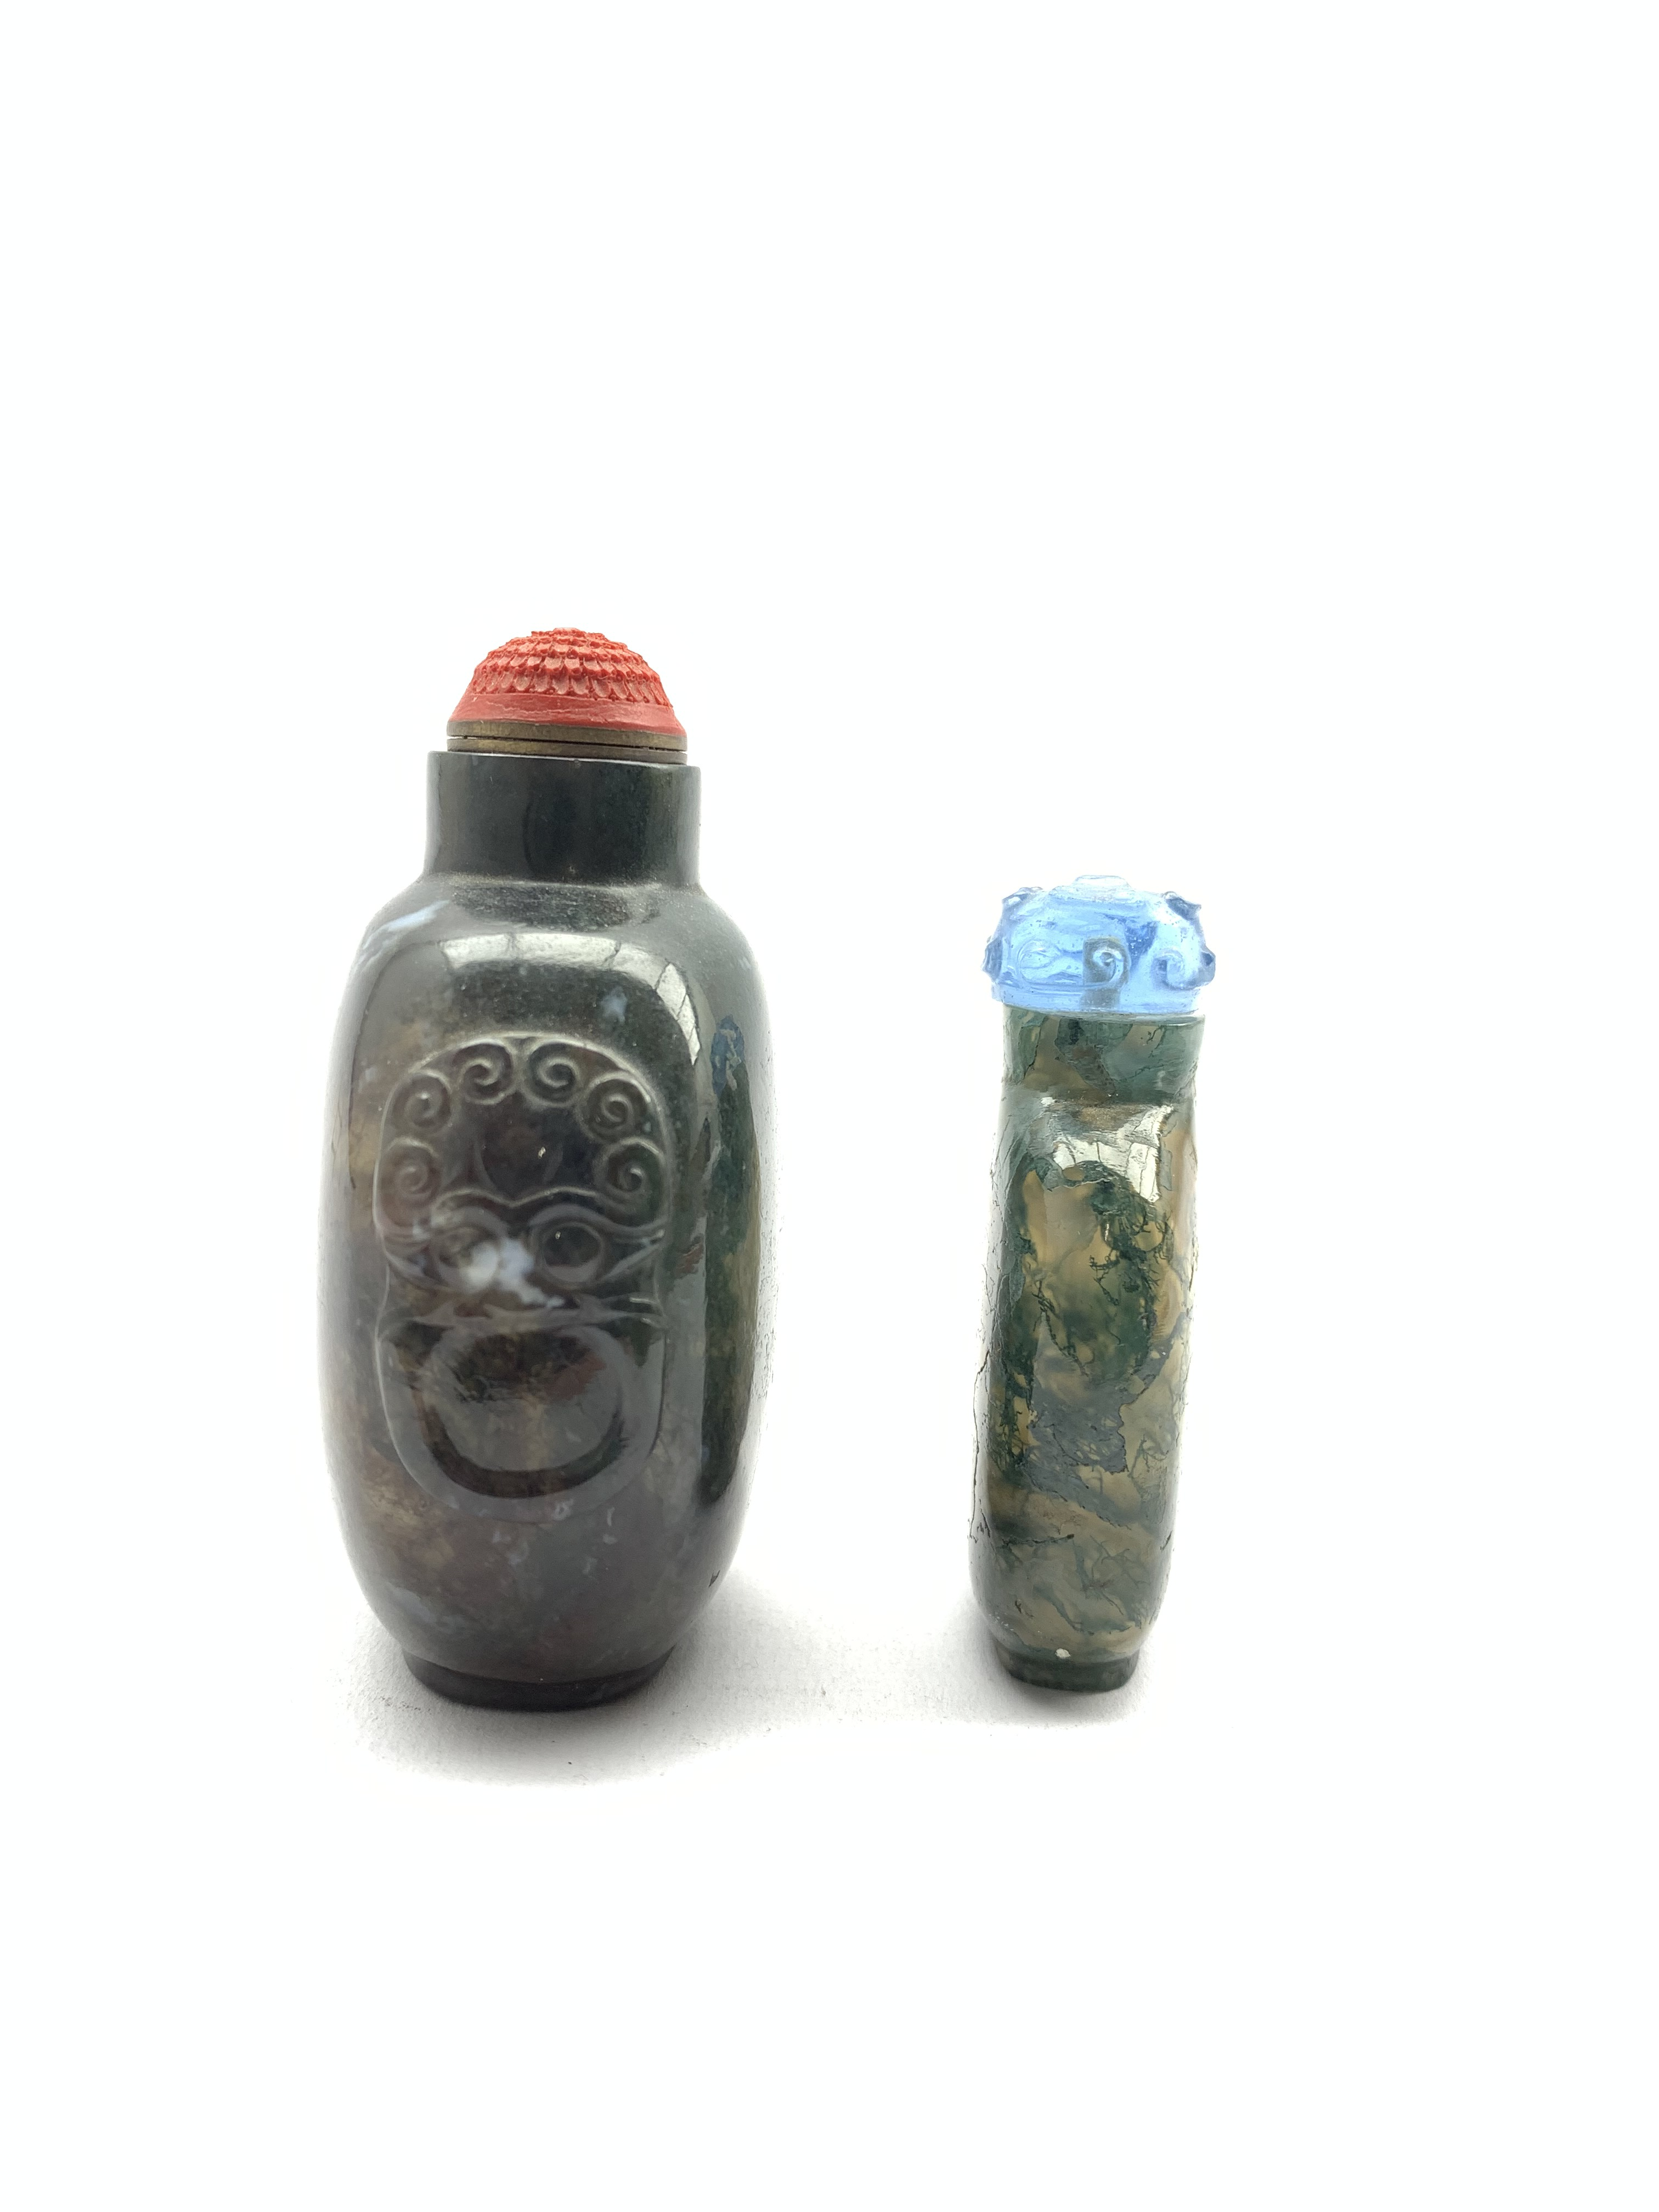 Chinese moss agate style snuff bottle with ring handles and cinnabar stopper, H8cm together with a s - Image 5 of 7